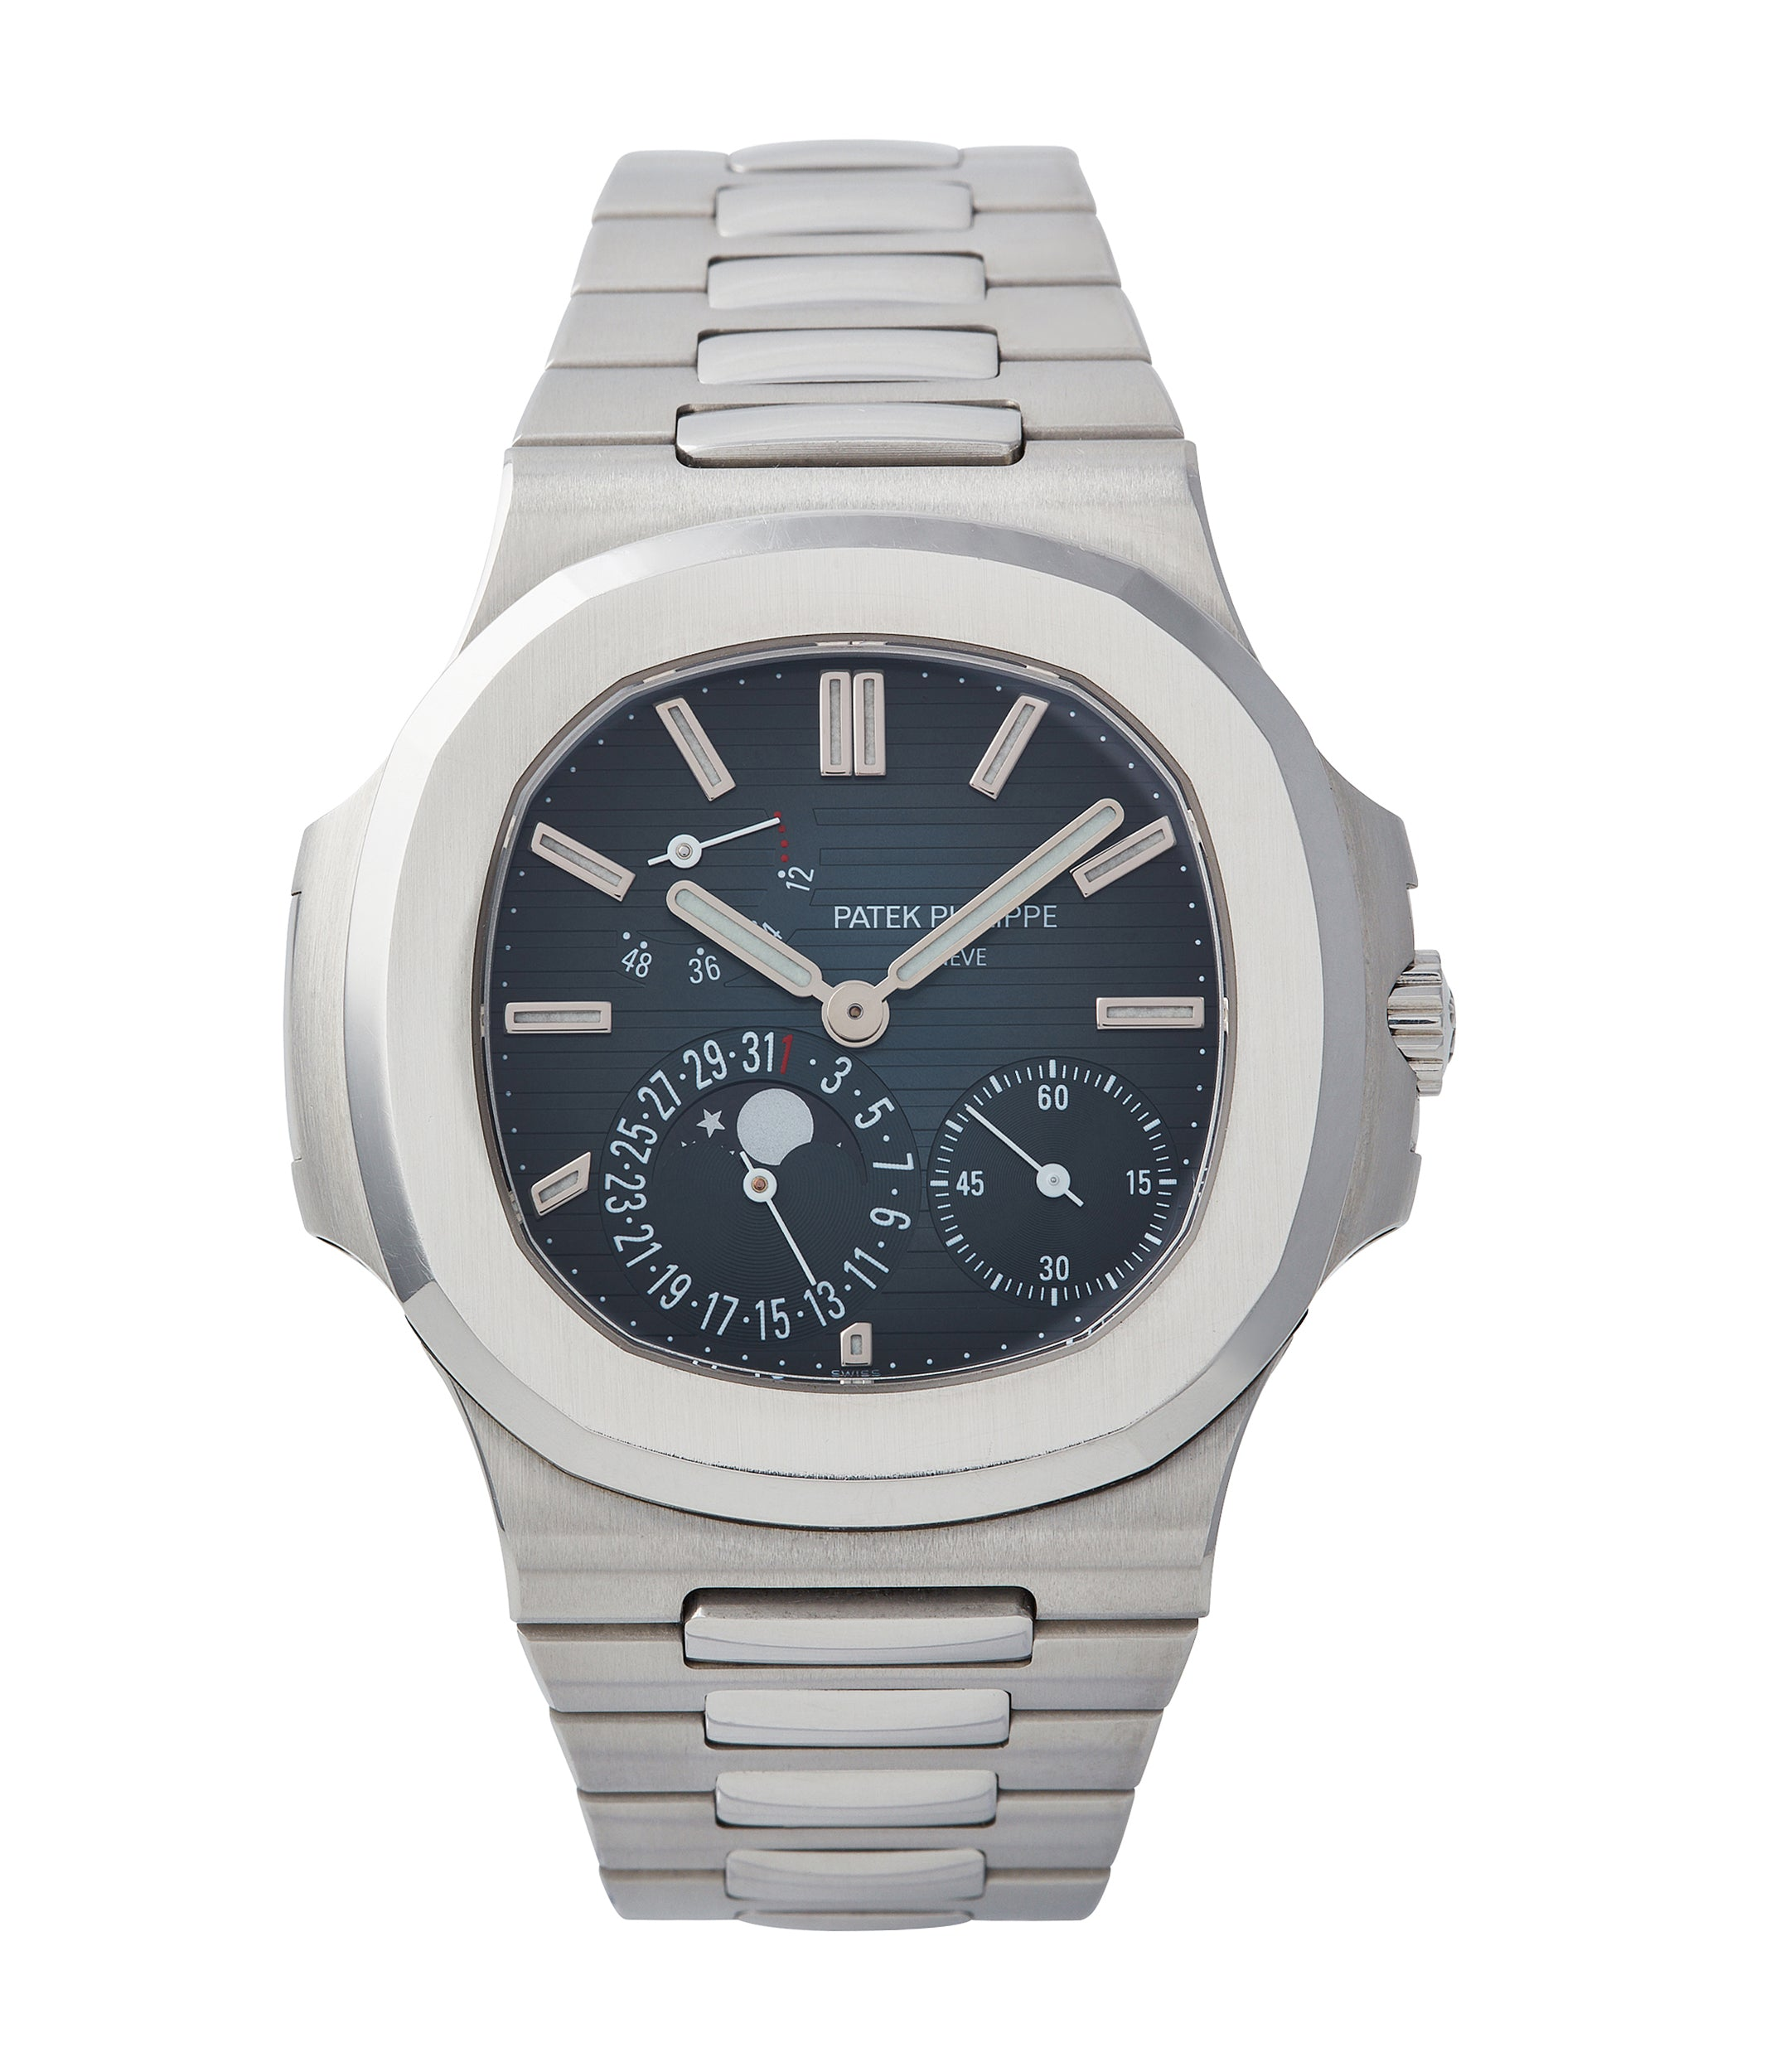 buy Patek Philippe Nautilus 5712/1A-001 steel moon phase luxury sports watch for sale online A Collected Man London UK specialist rare watches